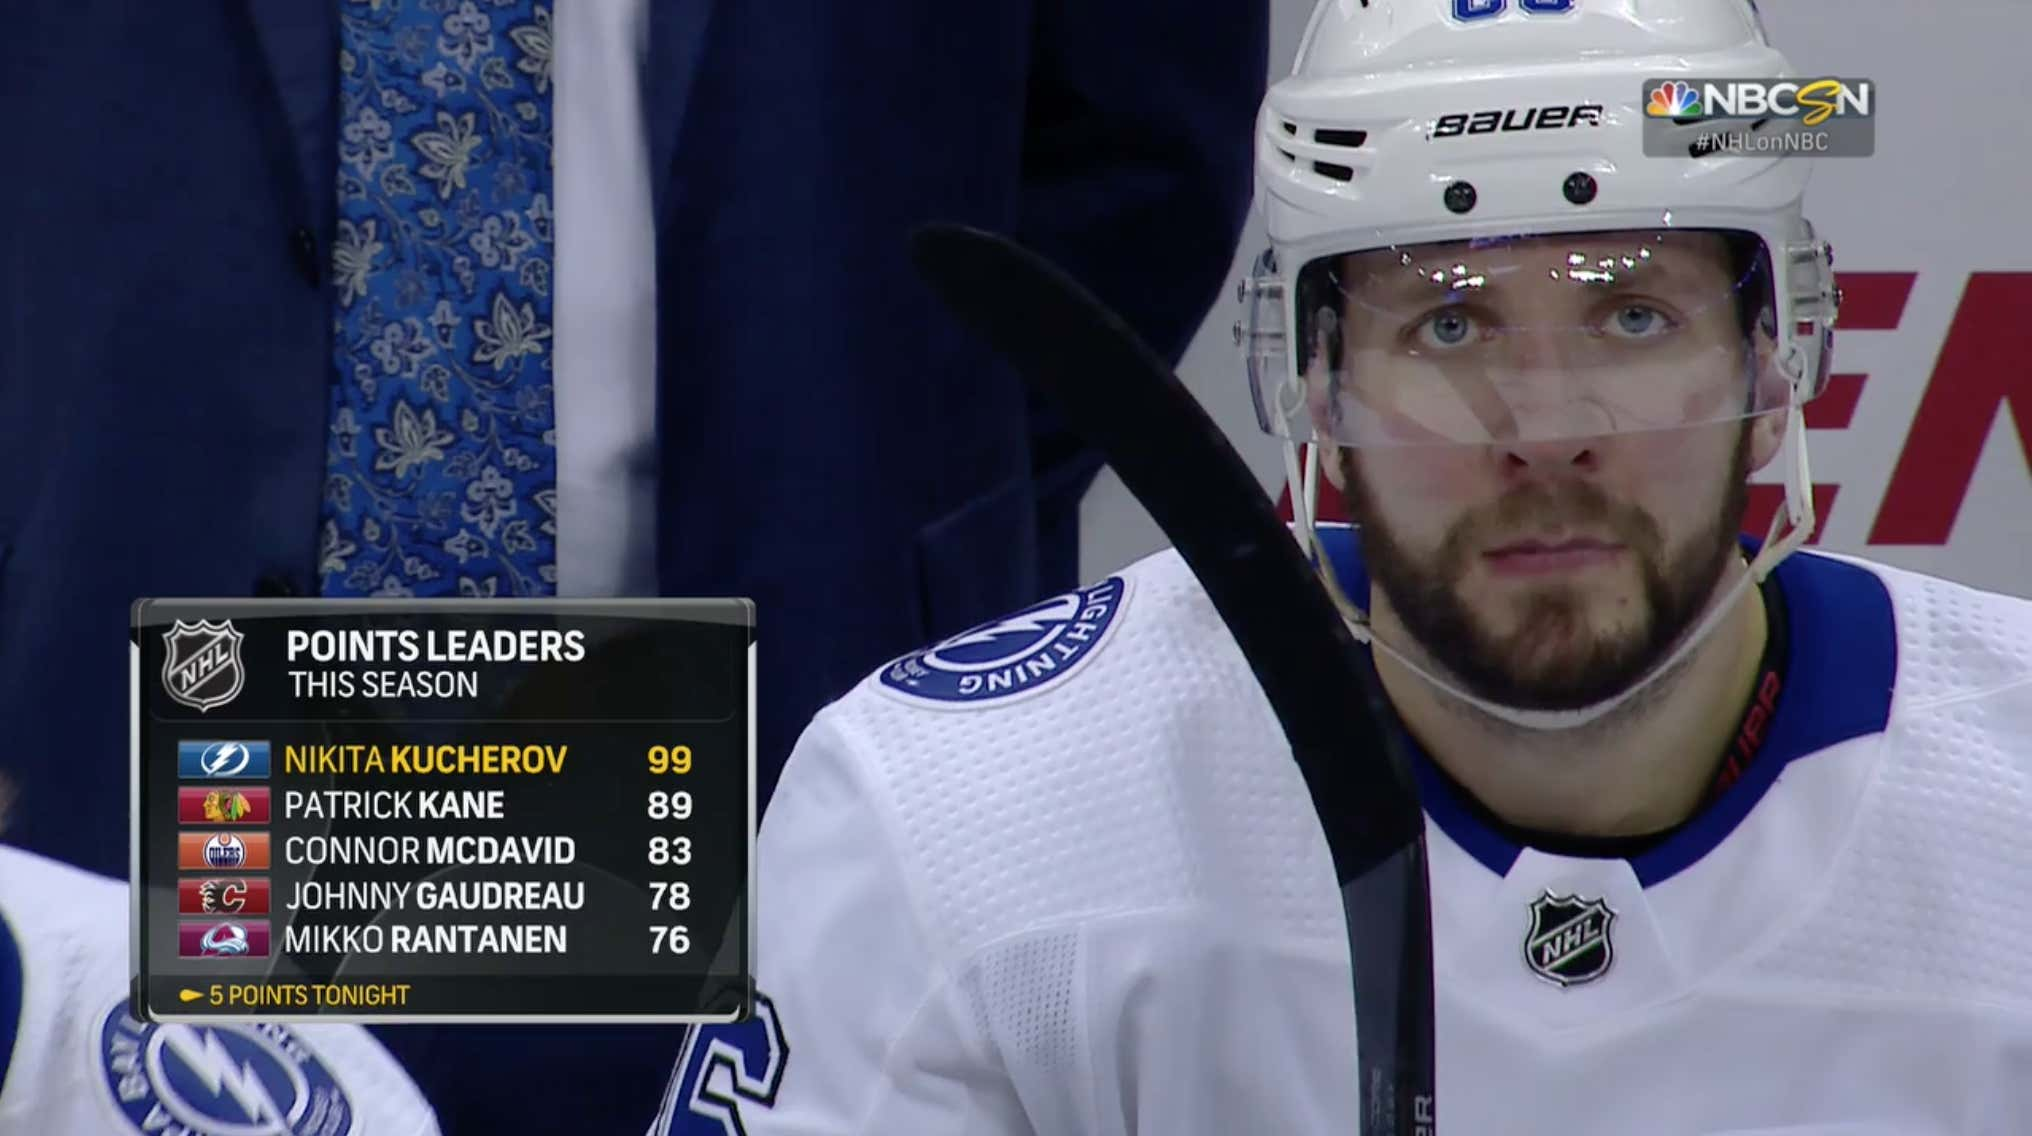 Nikita Kucherov Just Made A Mockery Of The National Hockey League